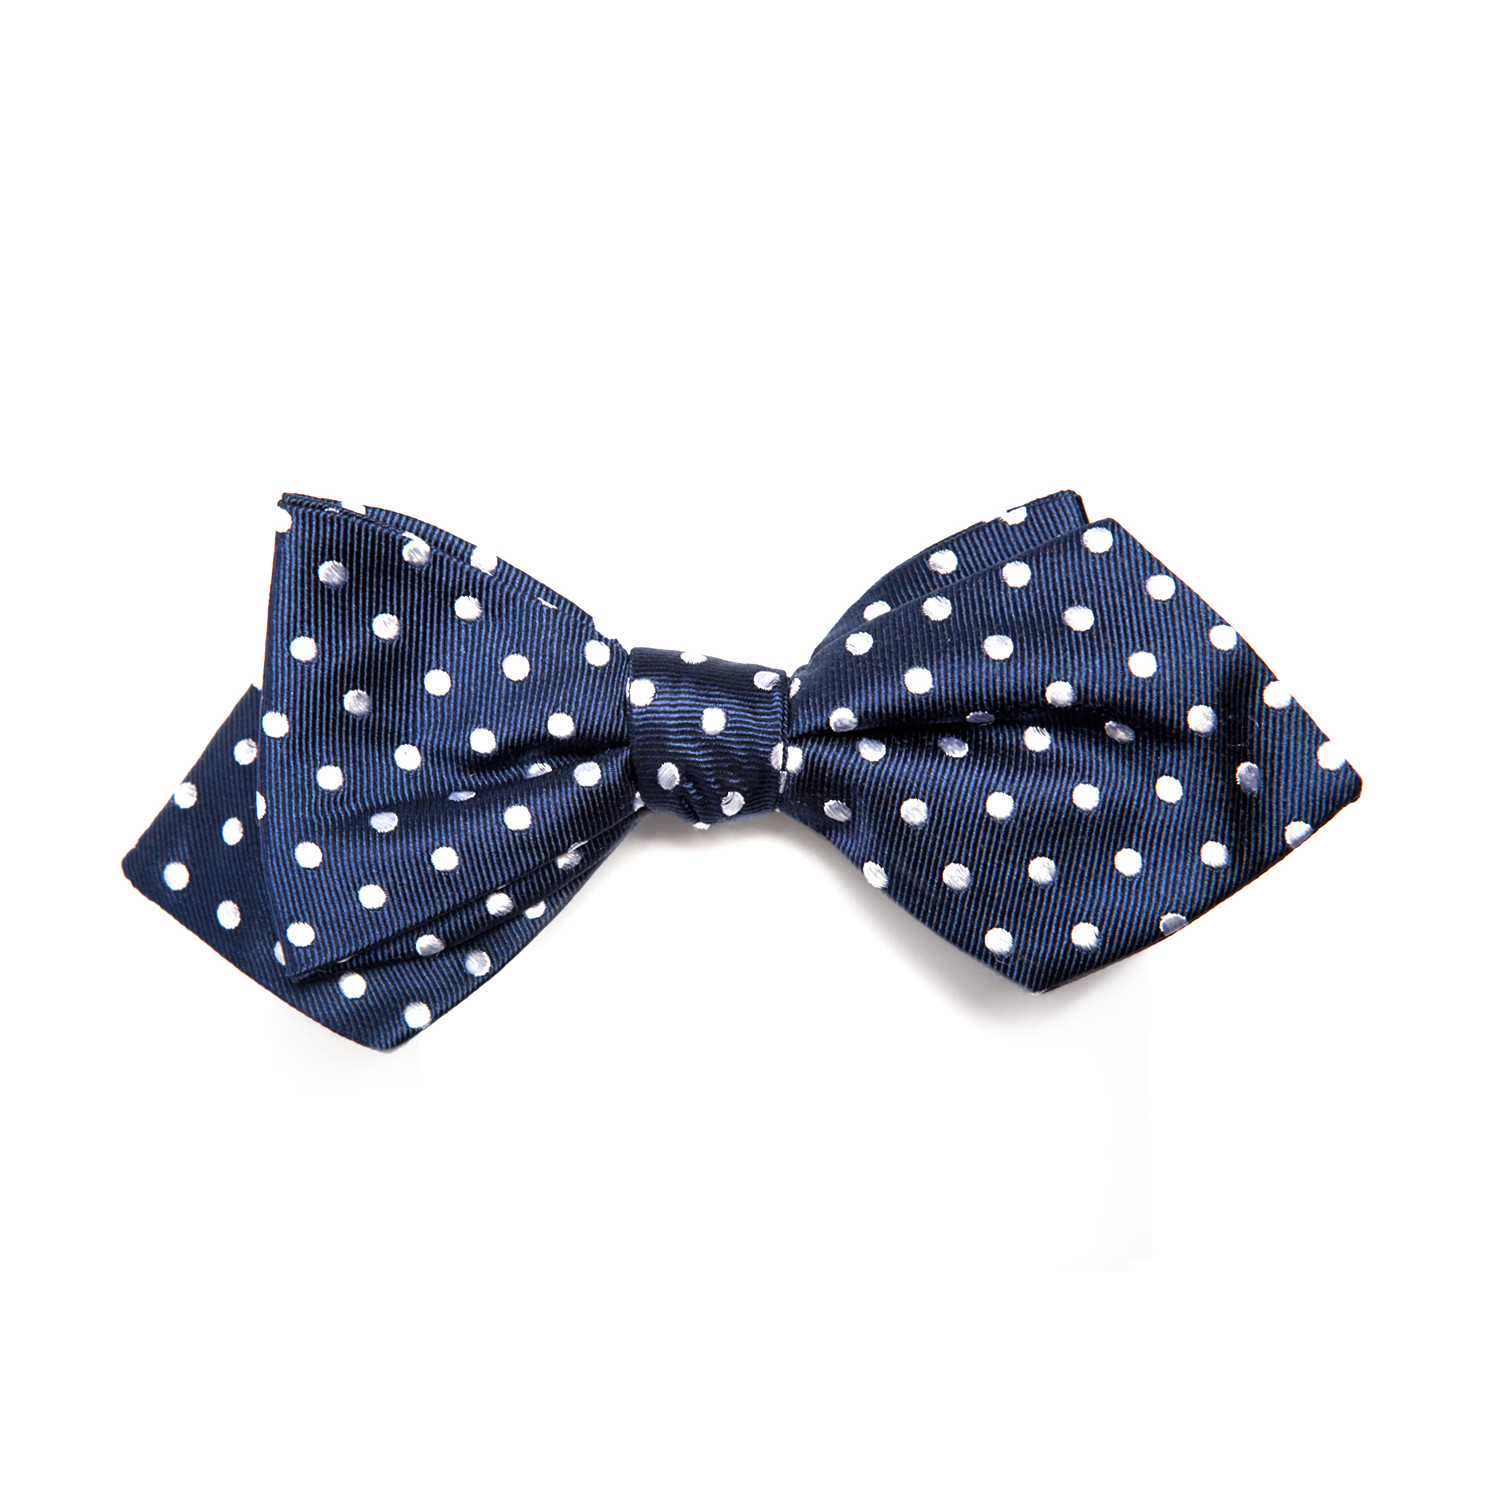 Silver & Navy Stripe Bow Tie. $ Galveston Bow Tie. $ Wedding Day White Bow Tie. $ Trust Me, I'm a Doctor Bow Tie. $ Royal Blue Pre-Tied Bow Tie Throughout the years, bow ties have become increasingly popular, with men and women using this trendy neckwear as a tool for self-expression.